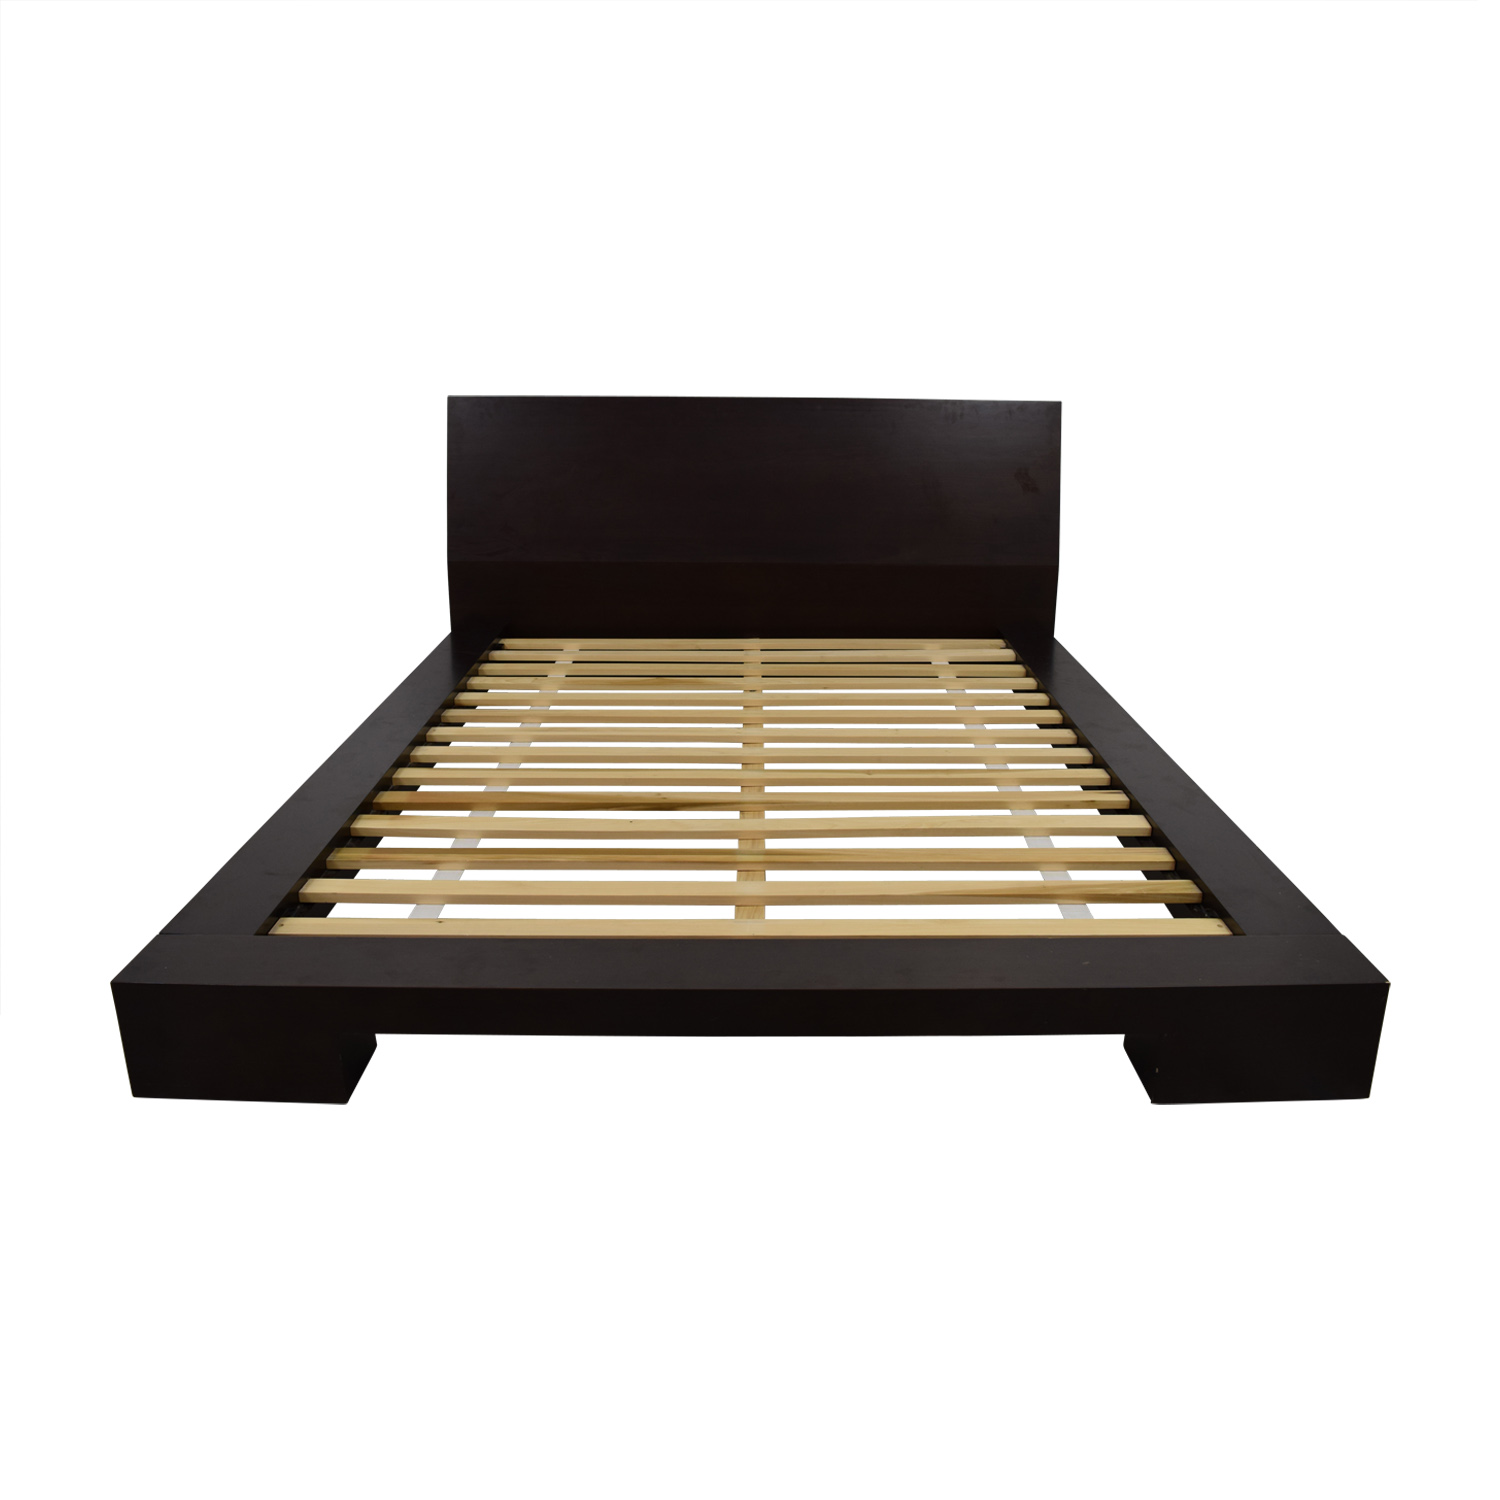 Crate & Barrel Crate & Barrel Dark Wood Queen Platform Bed Frame